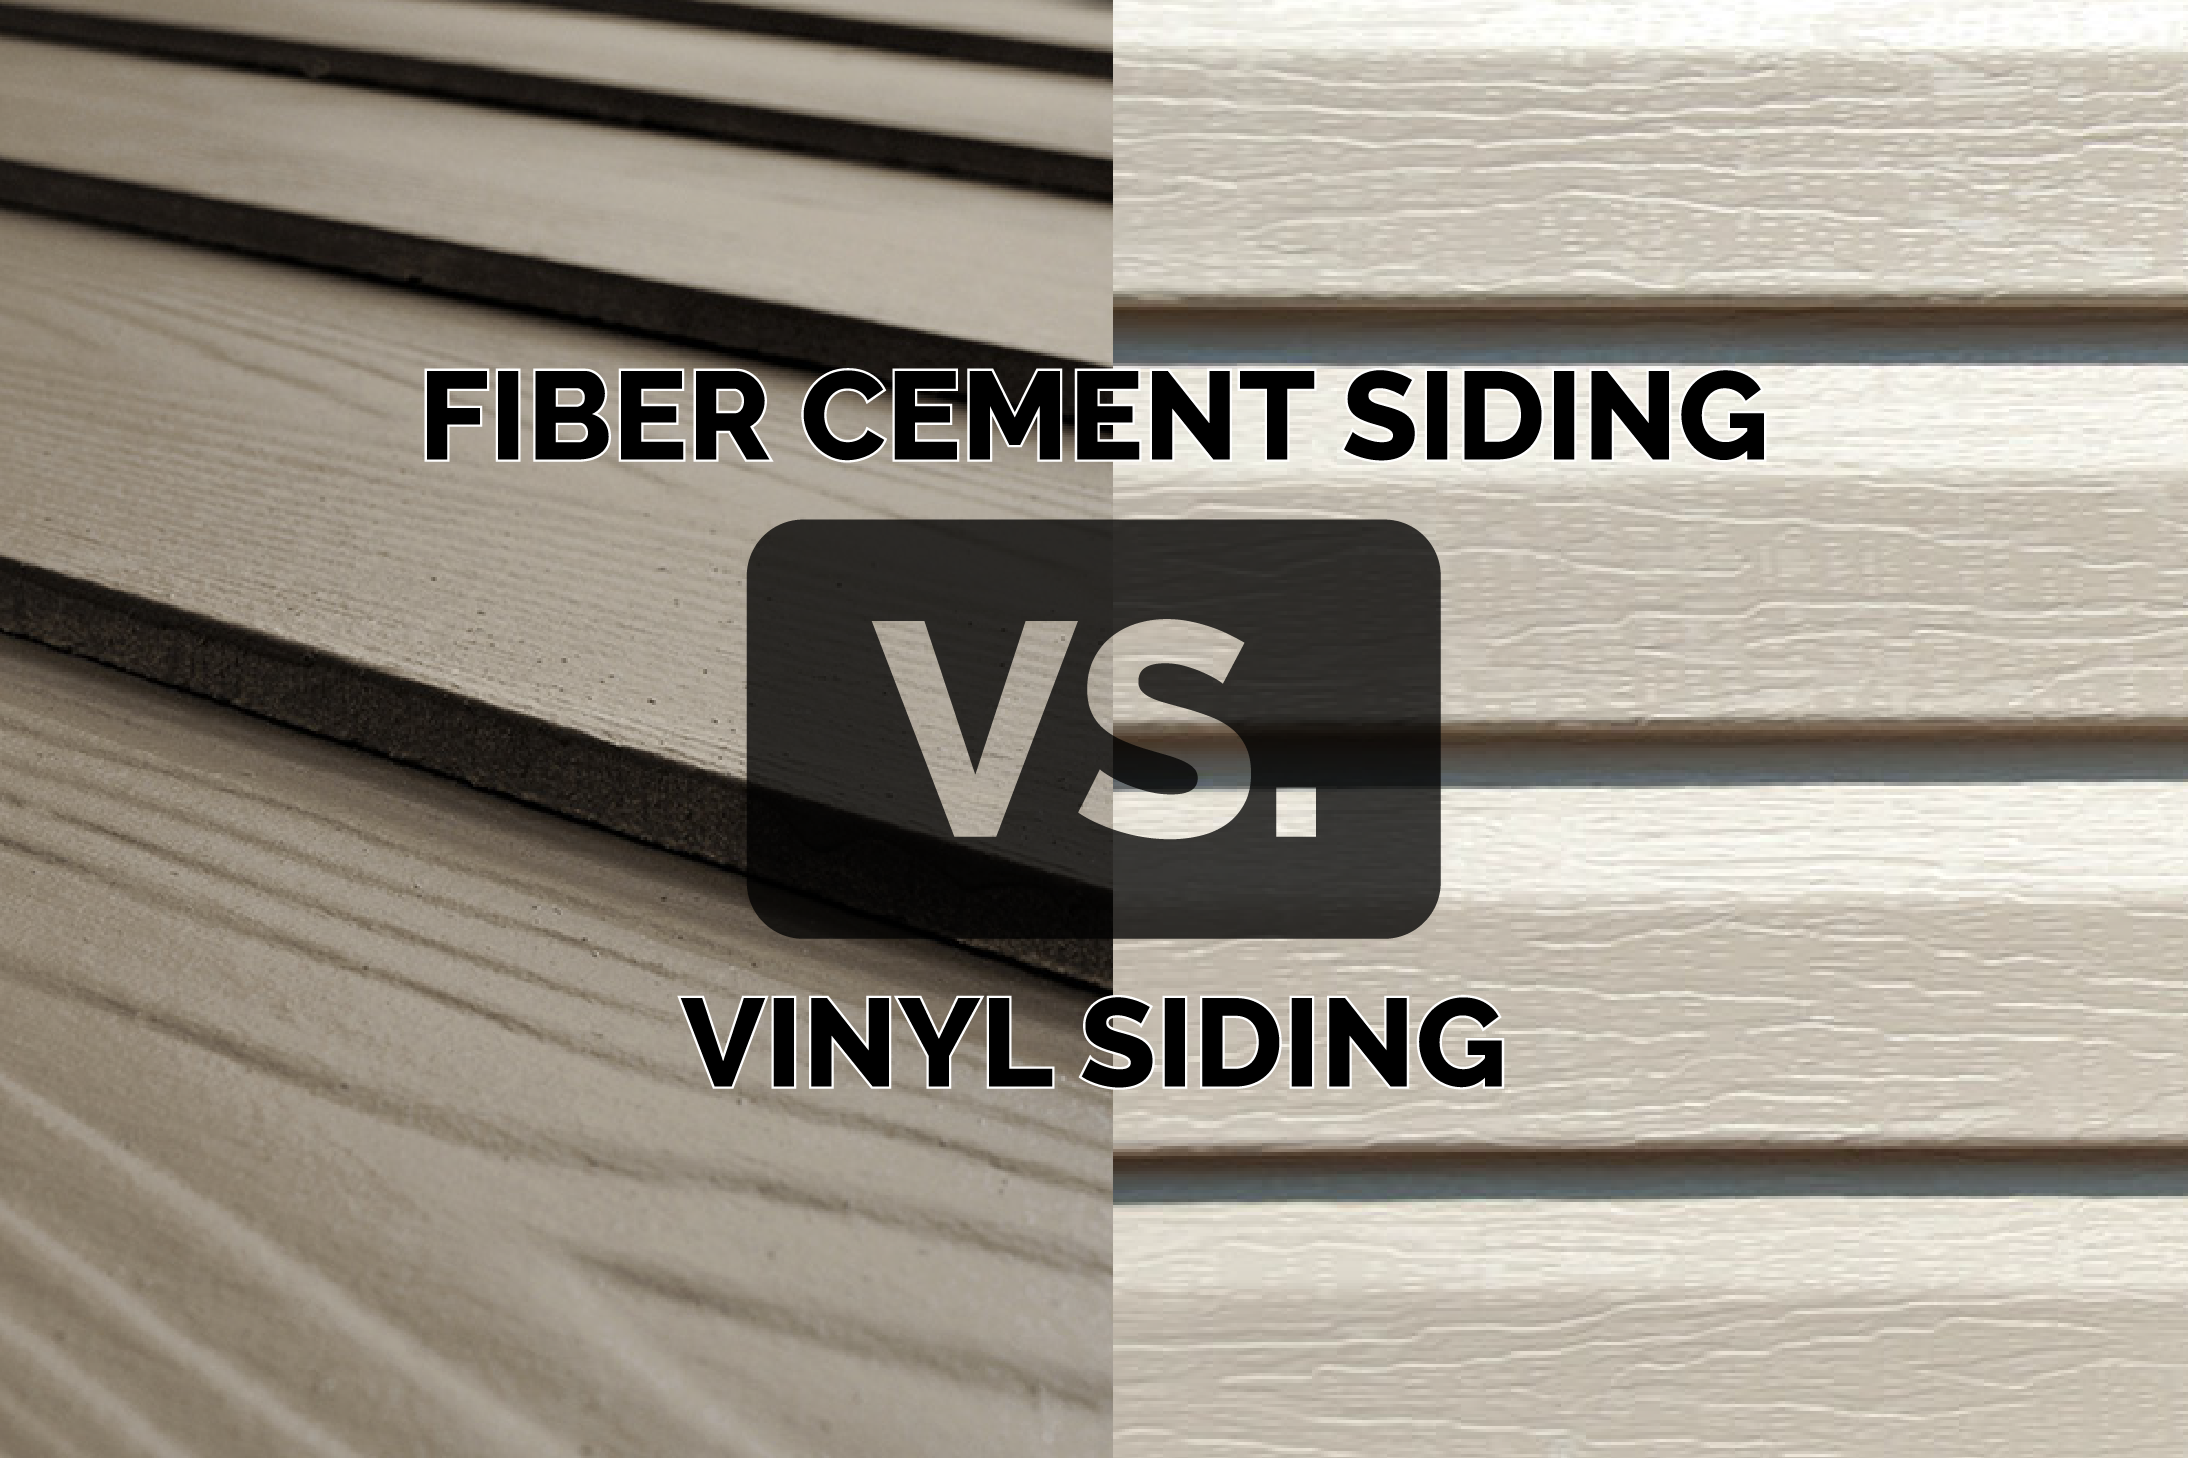 7 Popular Siding Materials To Consider: Fiber Cement Vs. Vinyl Siding. Which Is Better For